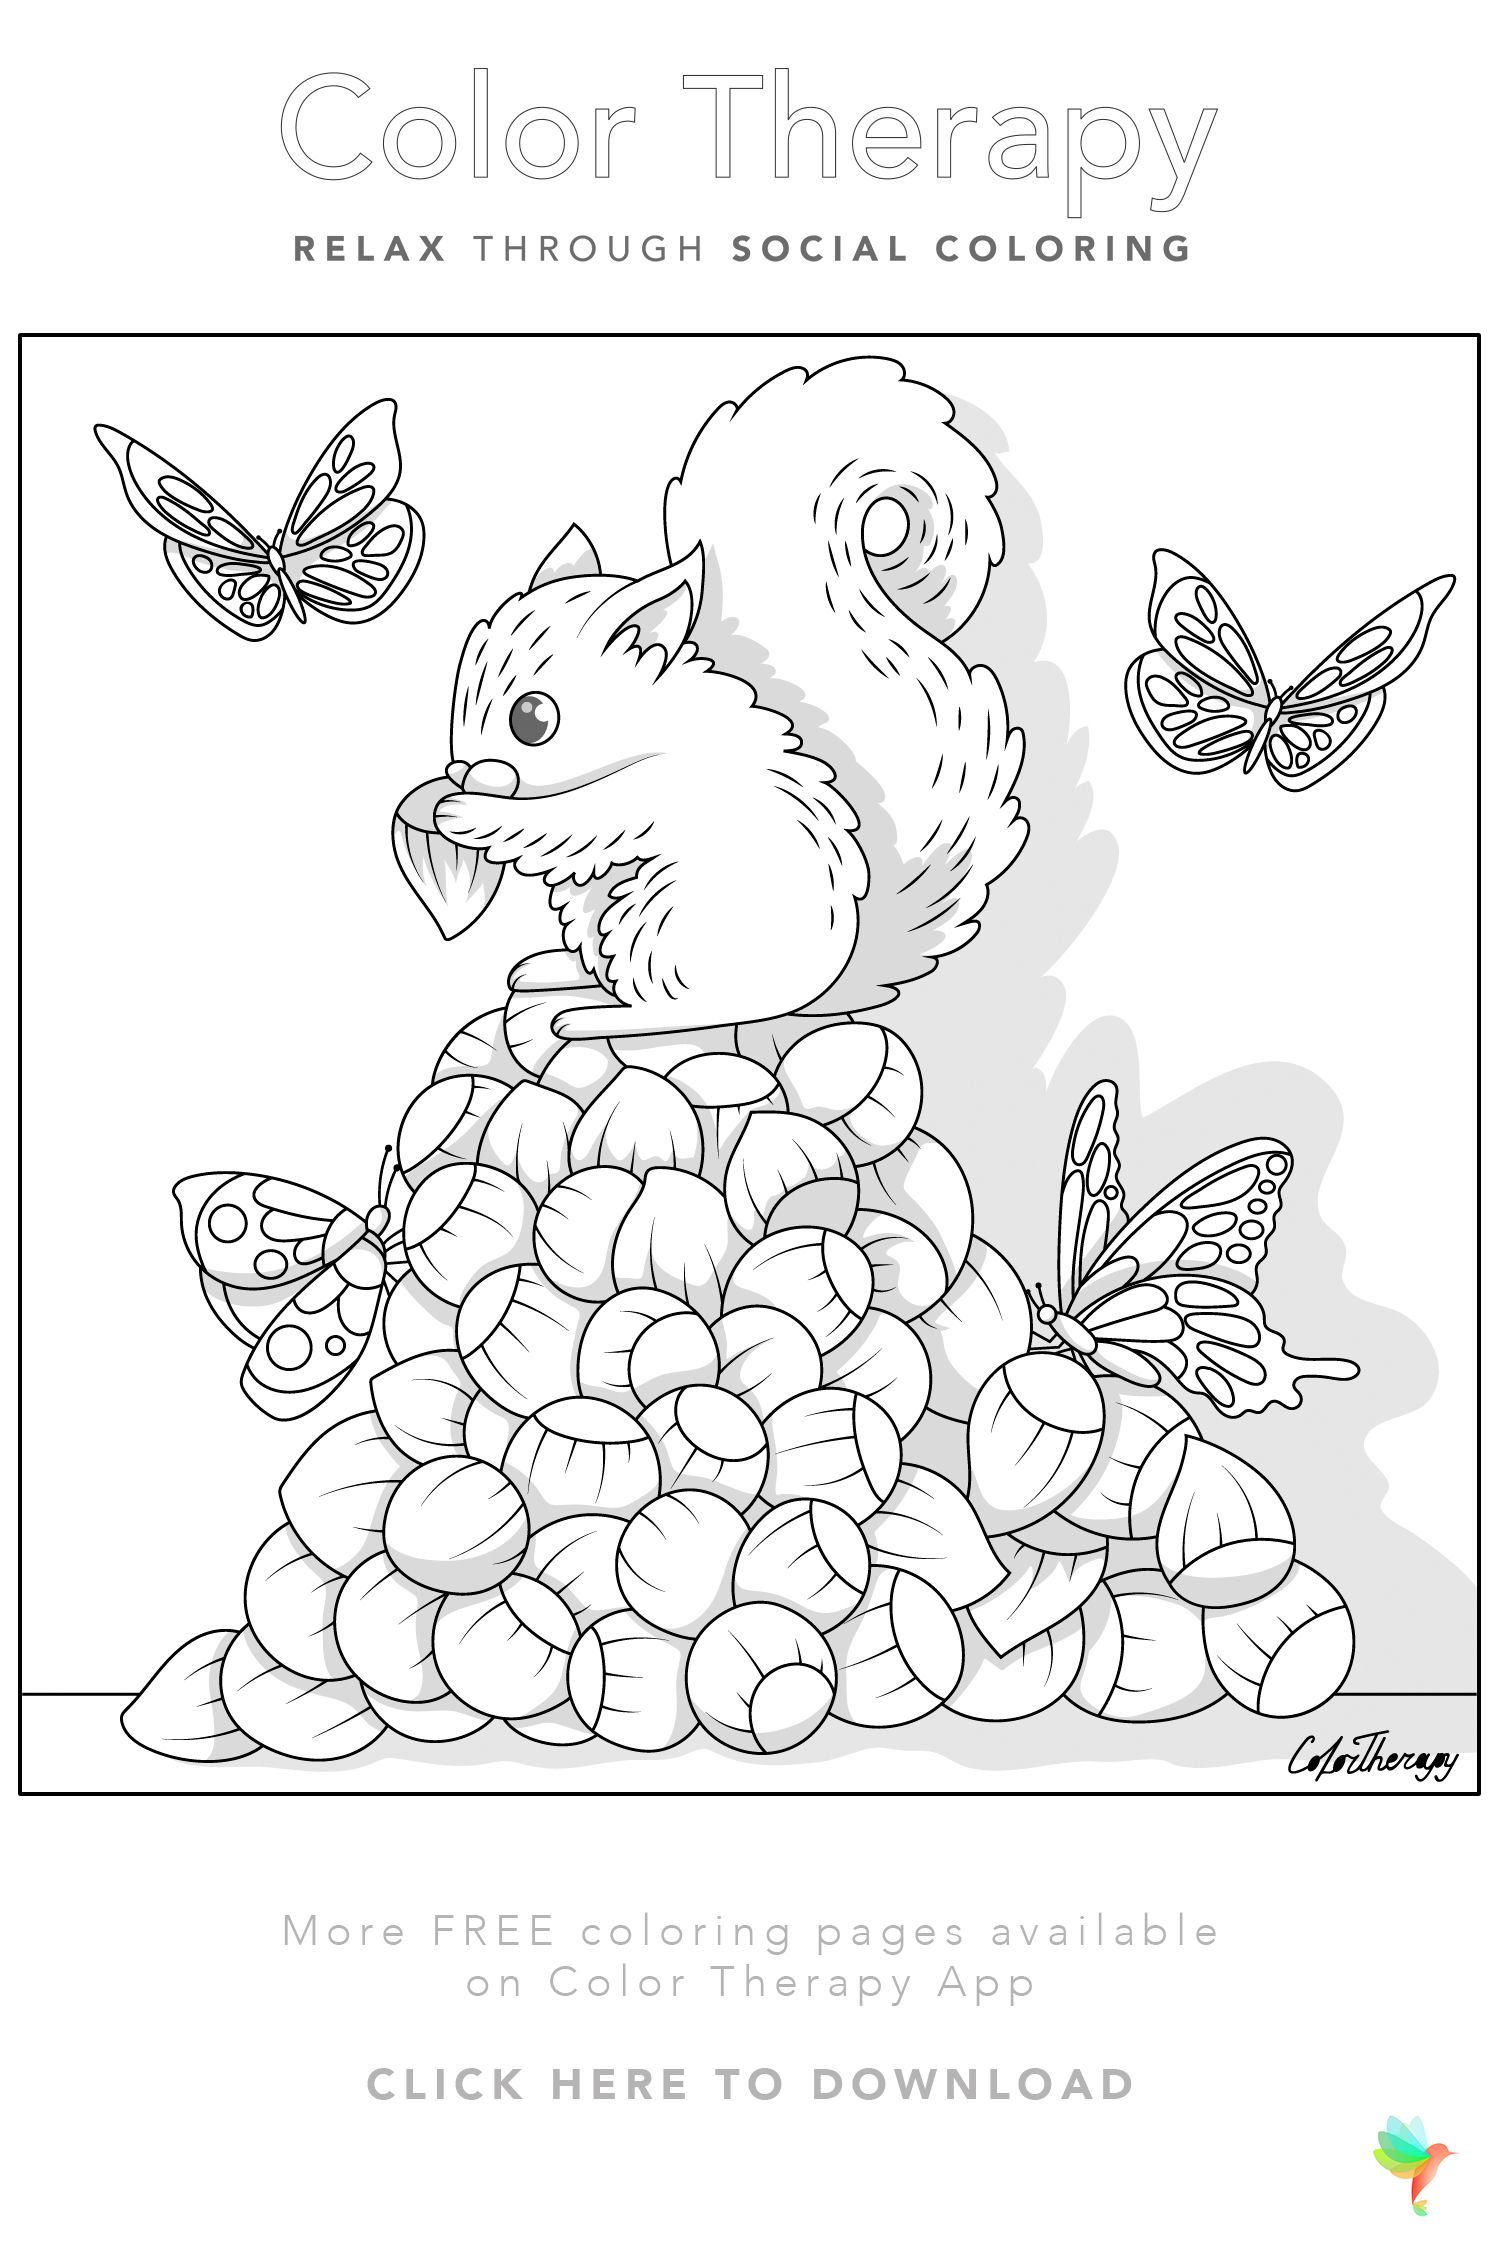 Color Therapy Gift Of The Day Free Coloring Template Free Coloring Pages Coloring Pages Coloring Books